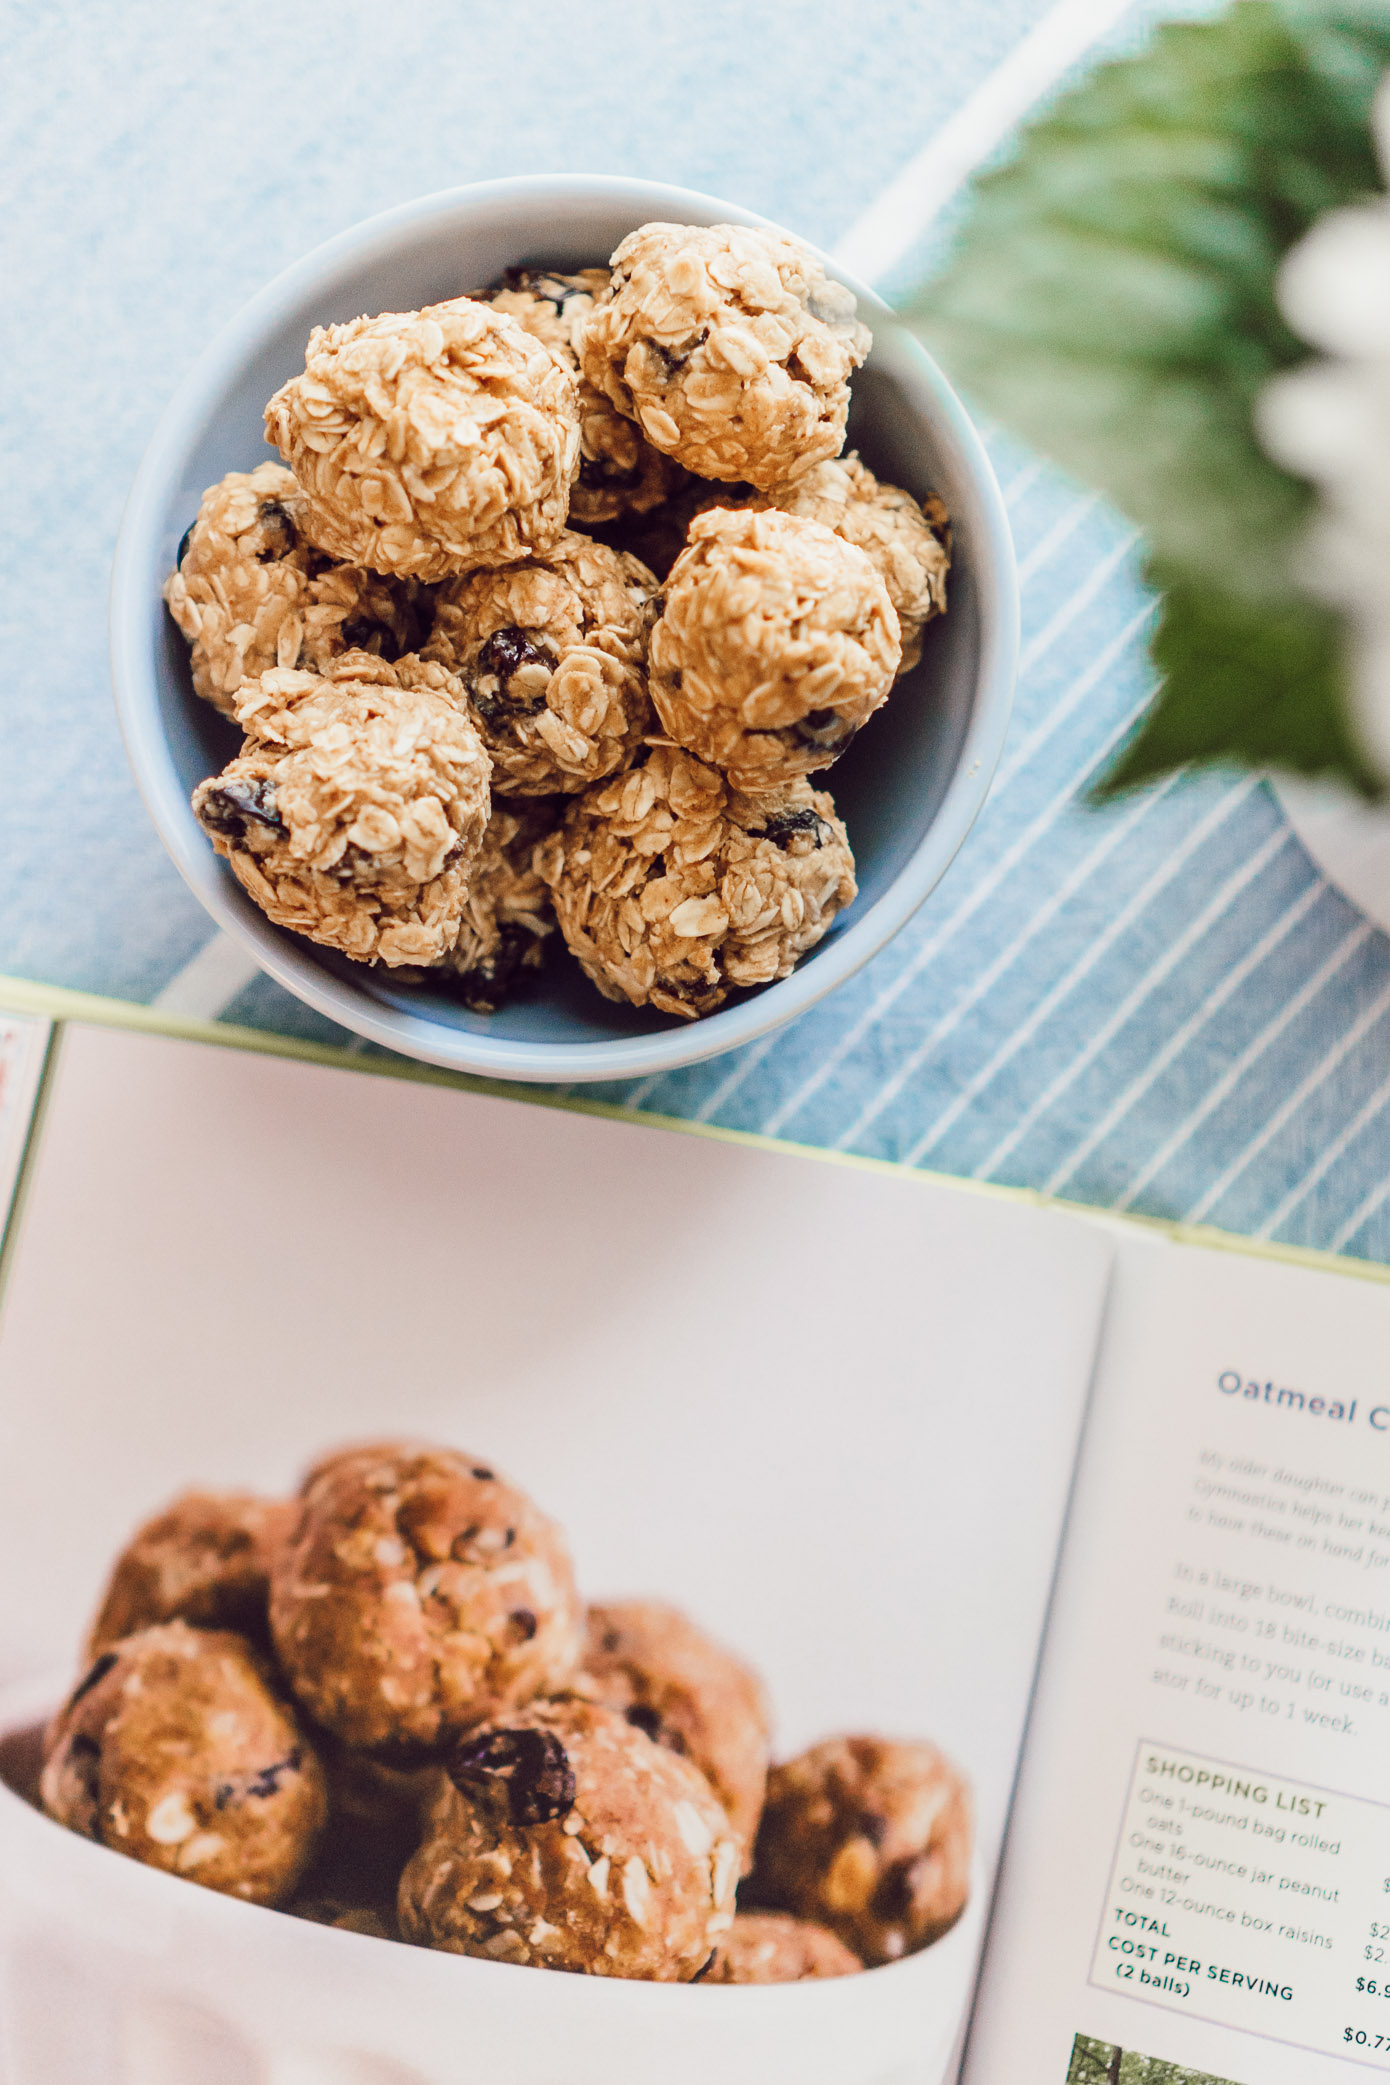 Easy, Healthy Afternoon Snack | Oatmeal Raisin Energy Bites, A Healthy Cookbook You Need In Your Kitchen featured on Louella Reese